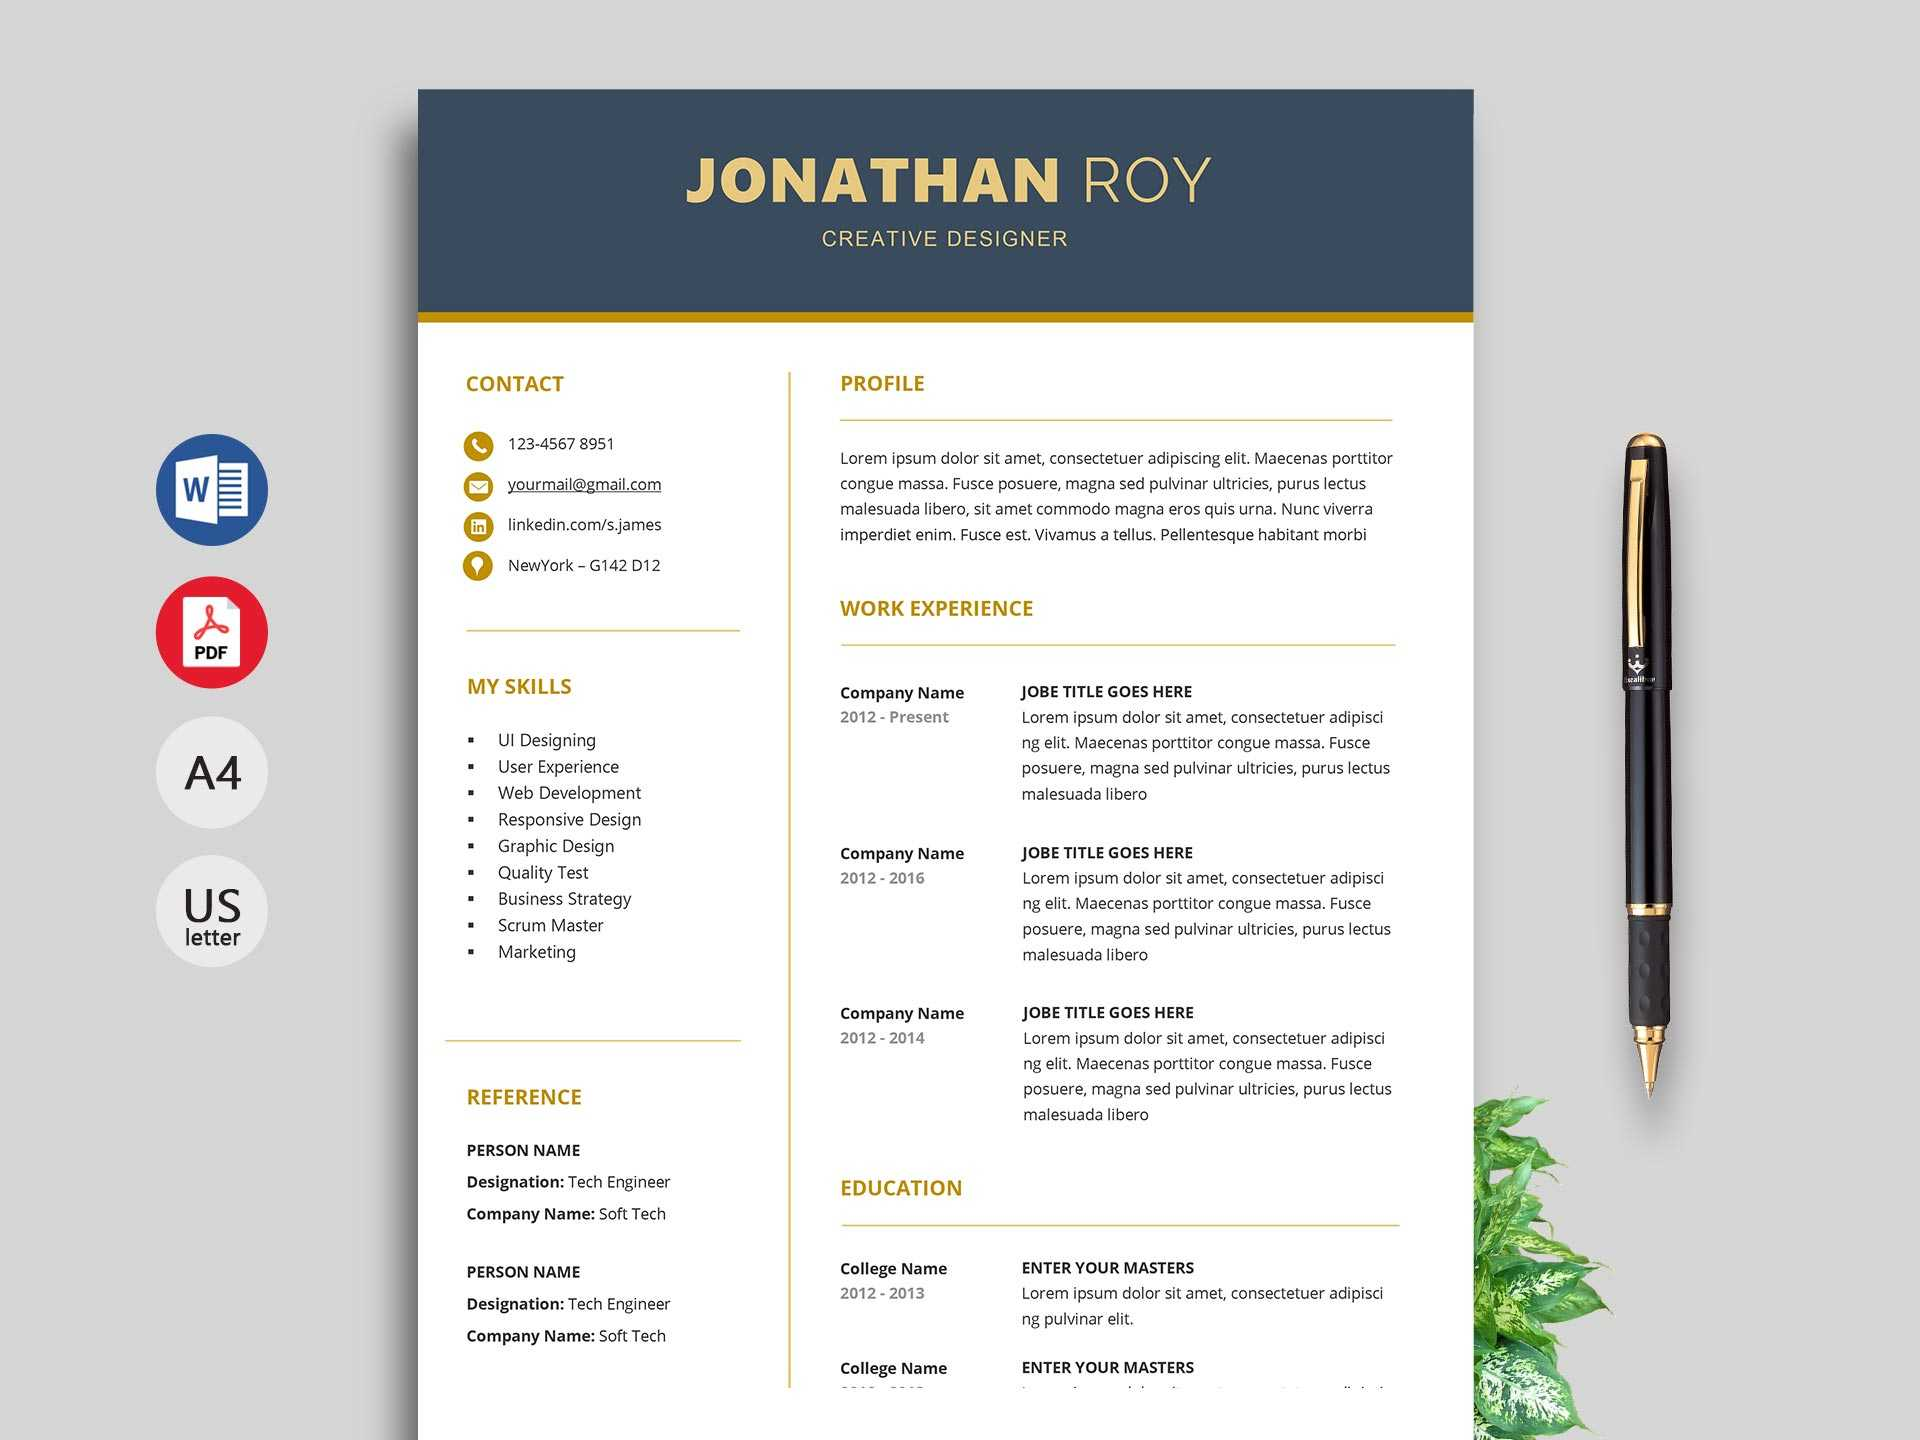 Free Simple Resume & Cv Templates Word Format 2019 | Resumekraft for How To Find A Resume Template On Word